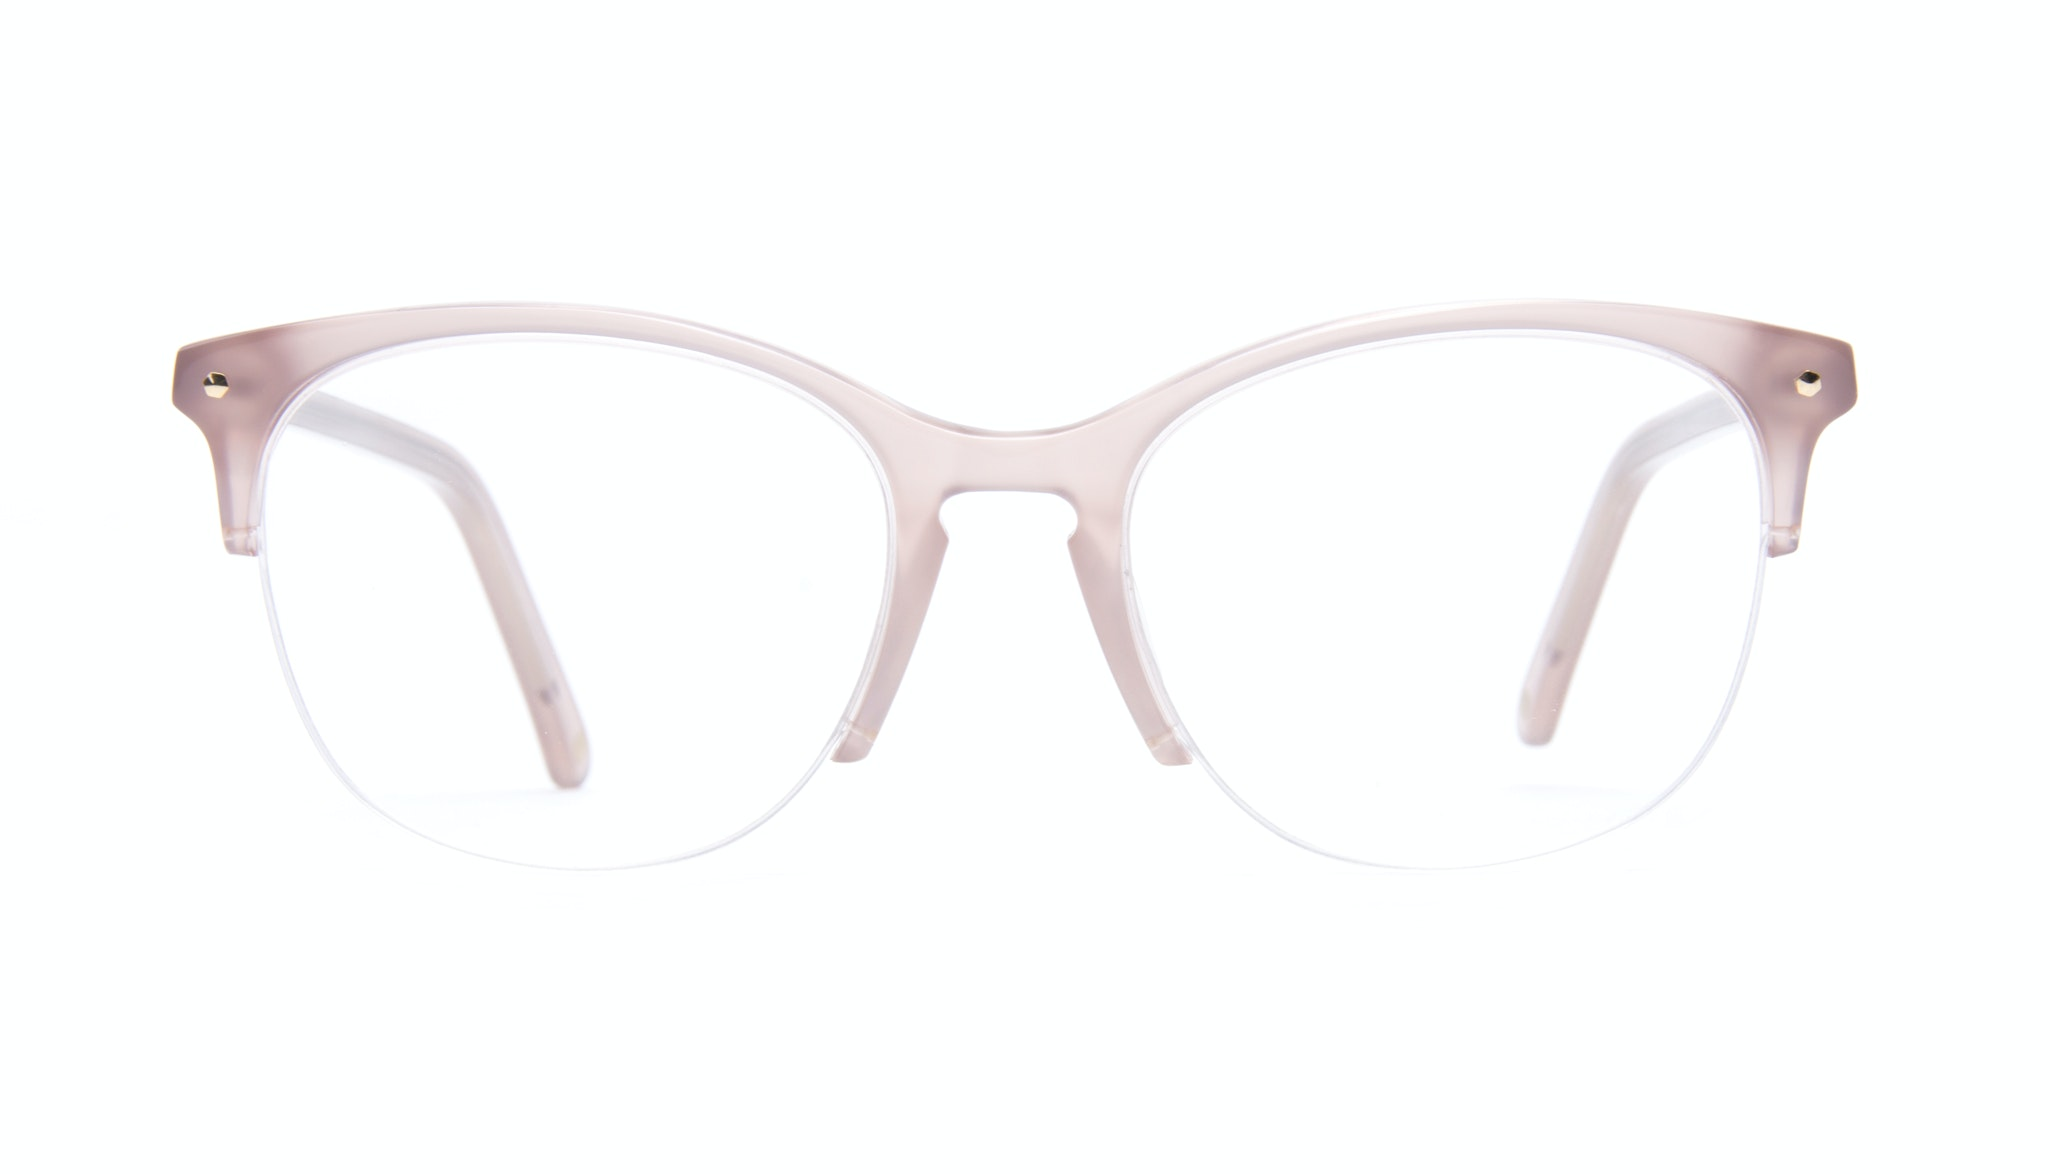 Affordable Fashion Glasses Rectangle Square Round Semi-Rimless Eyeglasses Women Nadine Light Pink Mouse Front